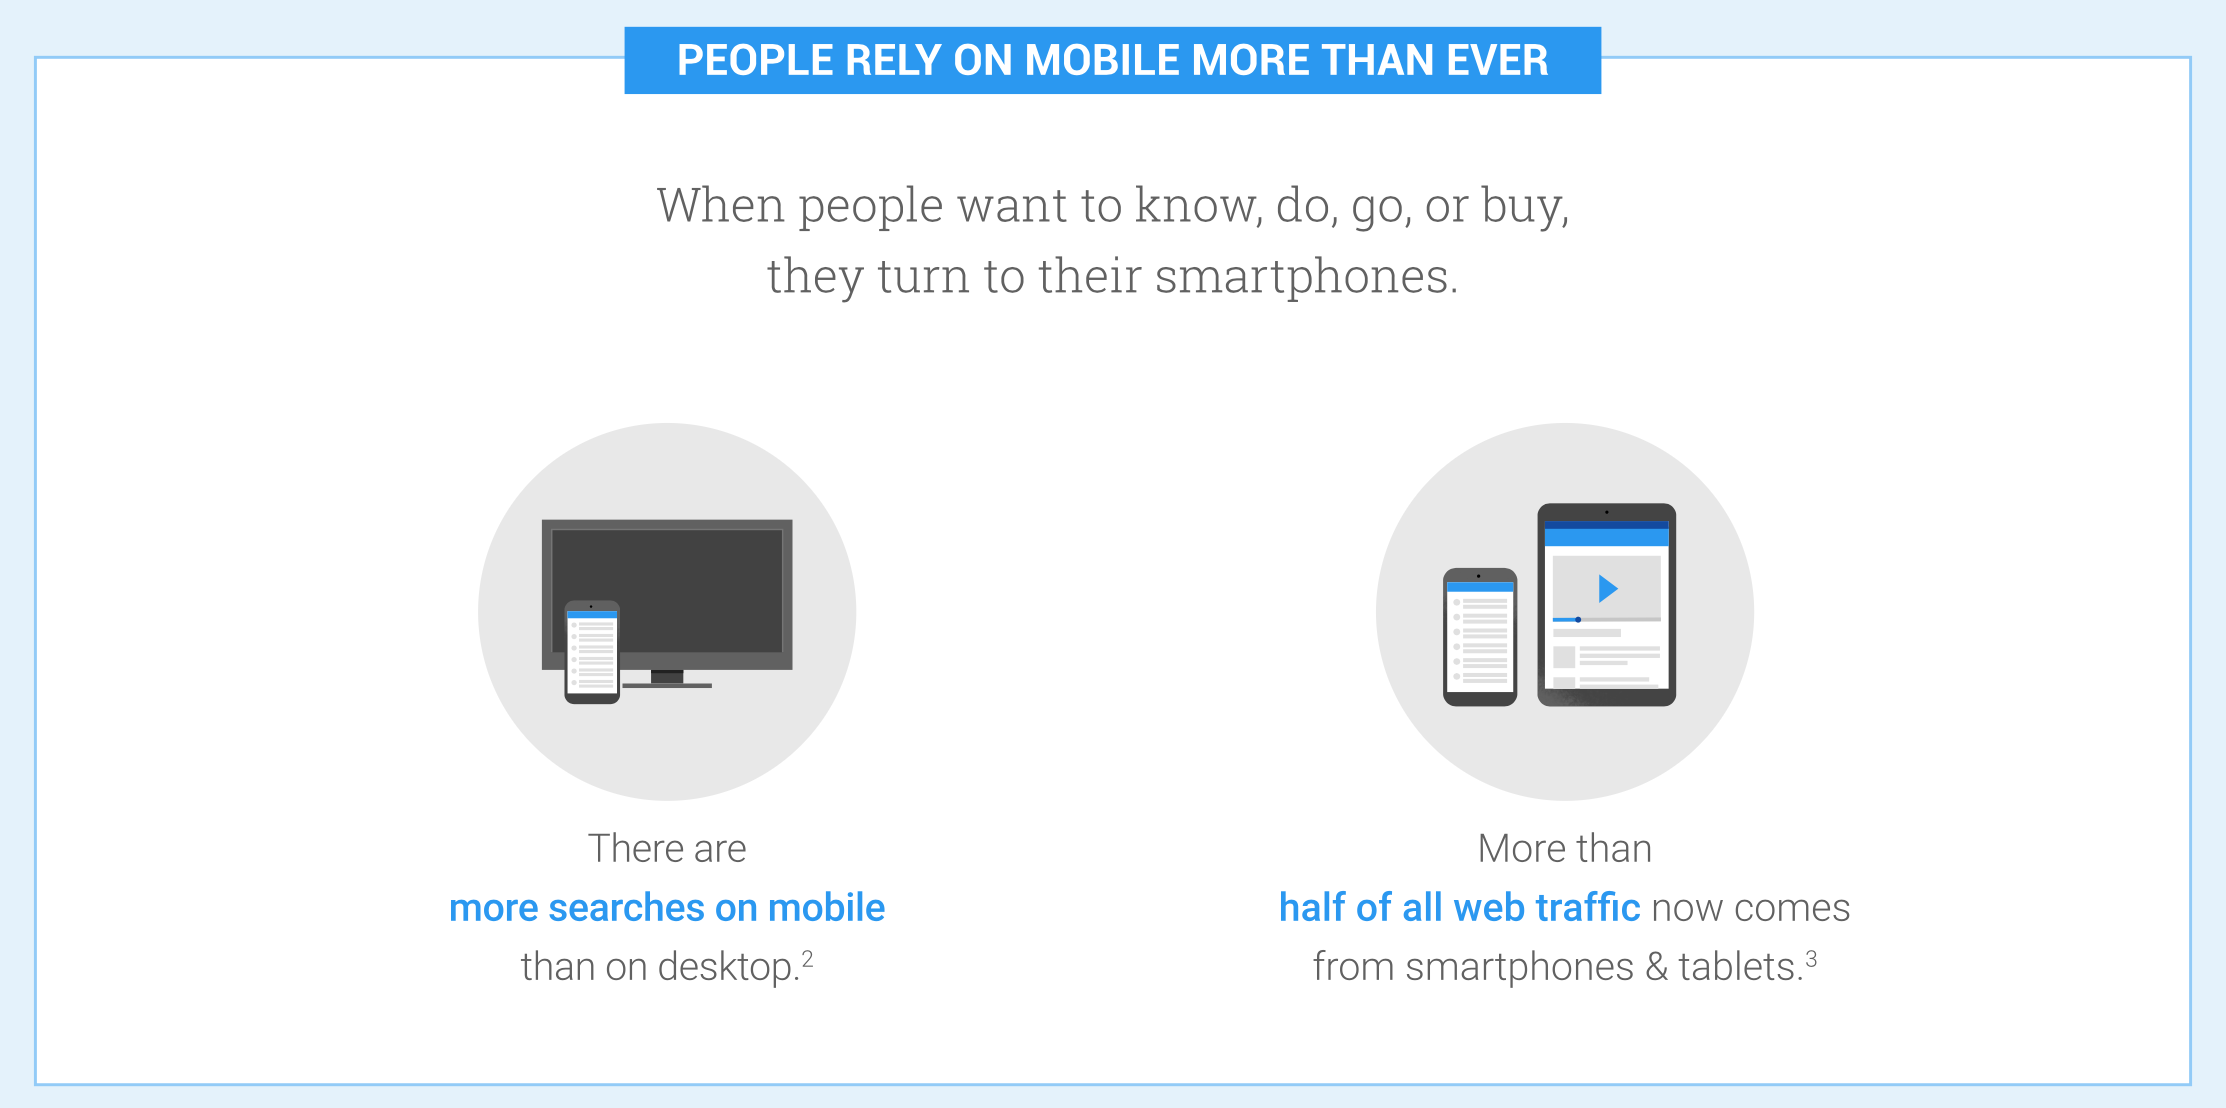 Mobile searchers